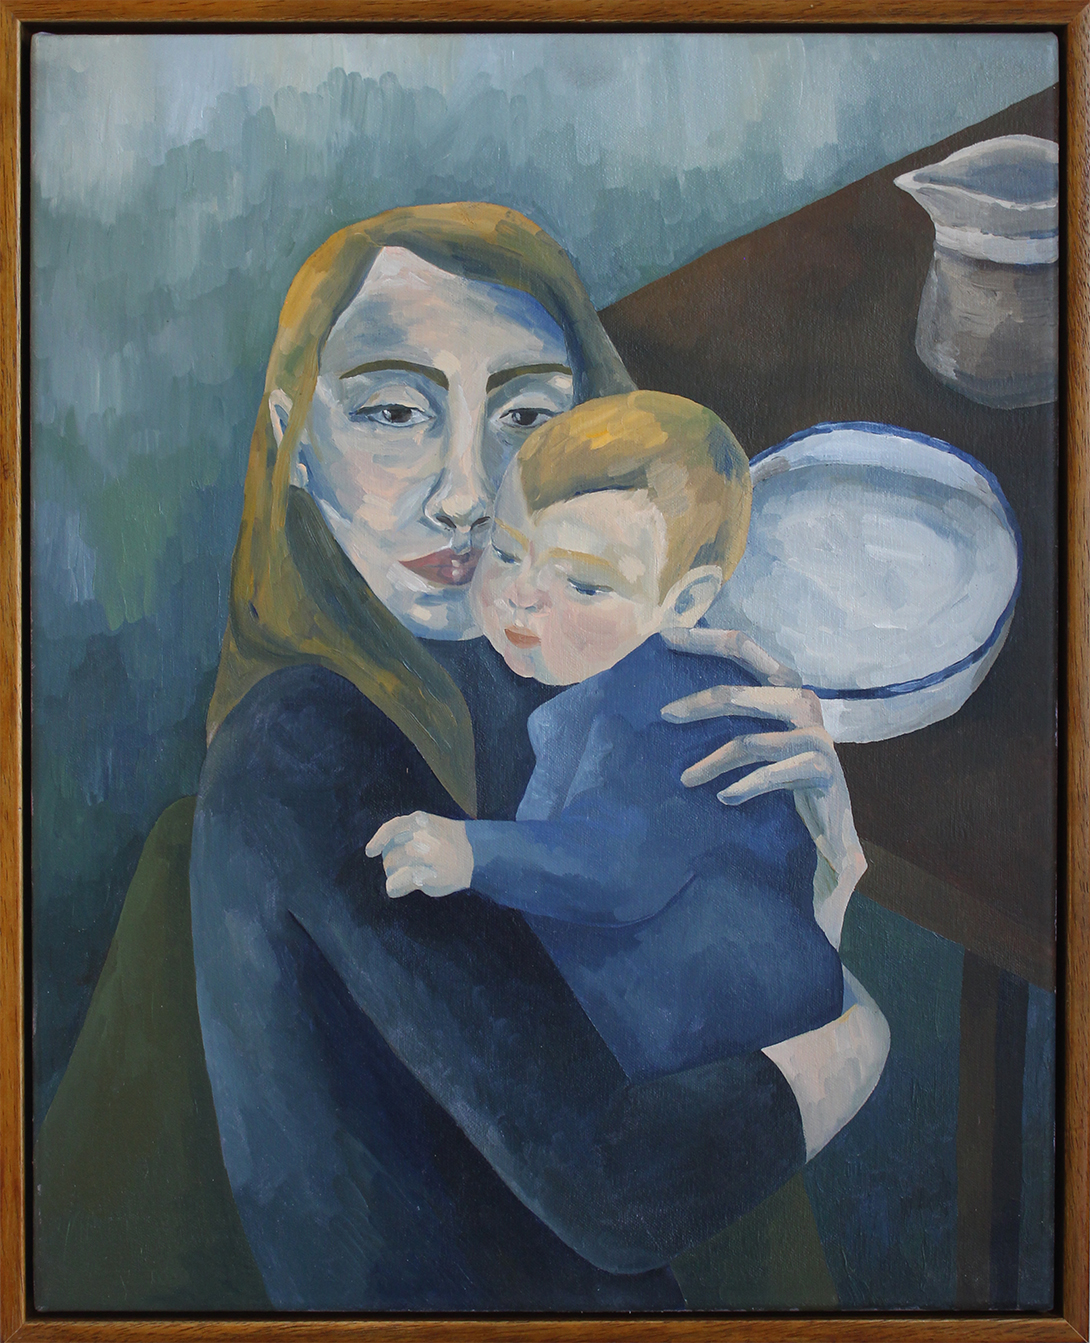 Jessica and Her Baby , commissioned portrait, 2018  40 x 50 cm, oil on canvas